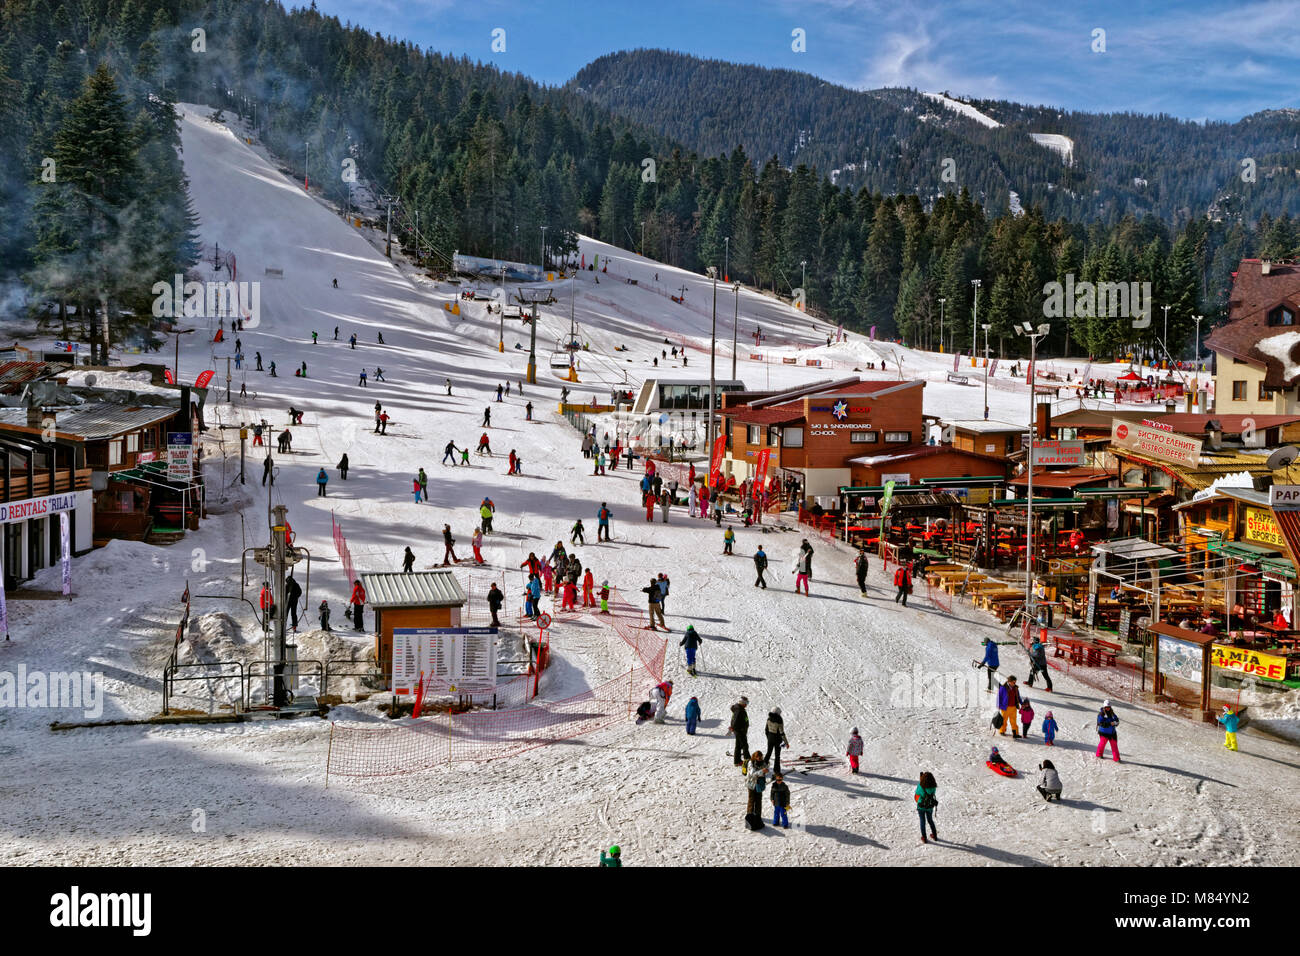 Beginners drag lift and nursery slopes at Borovets Ski resort, Targovishte, Bulgaria. - Stock Image